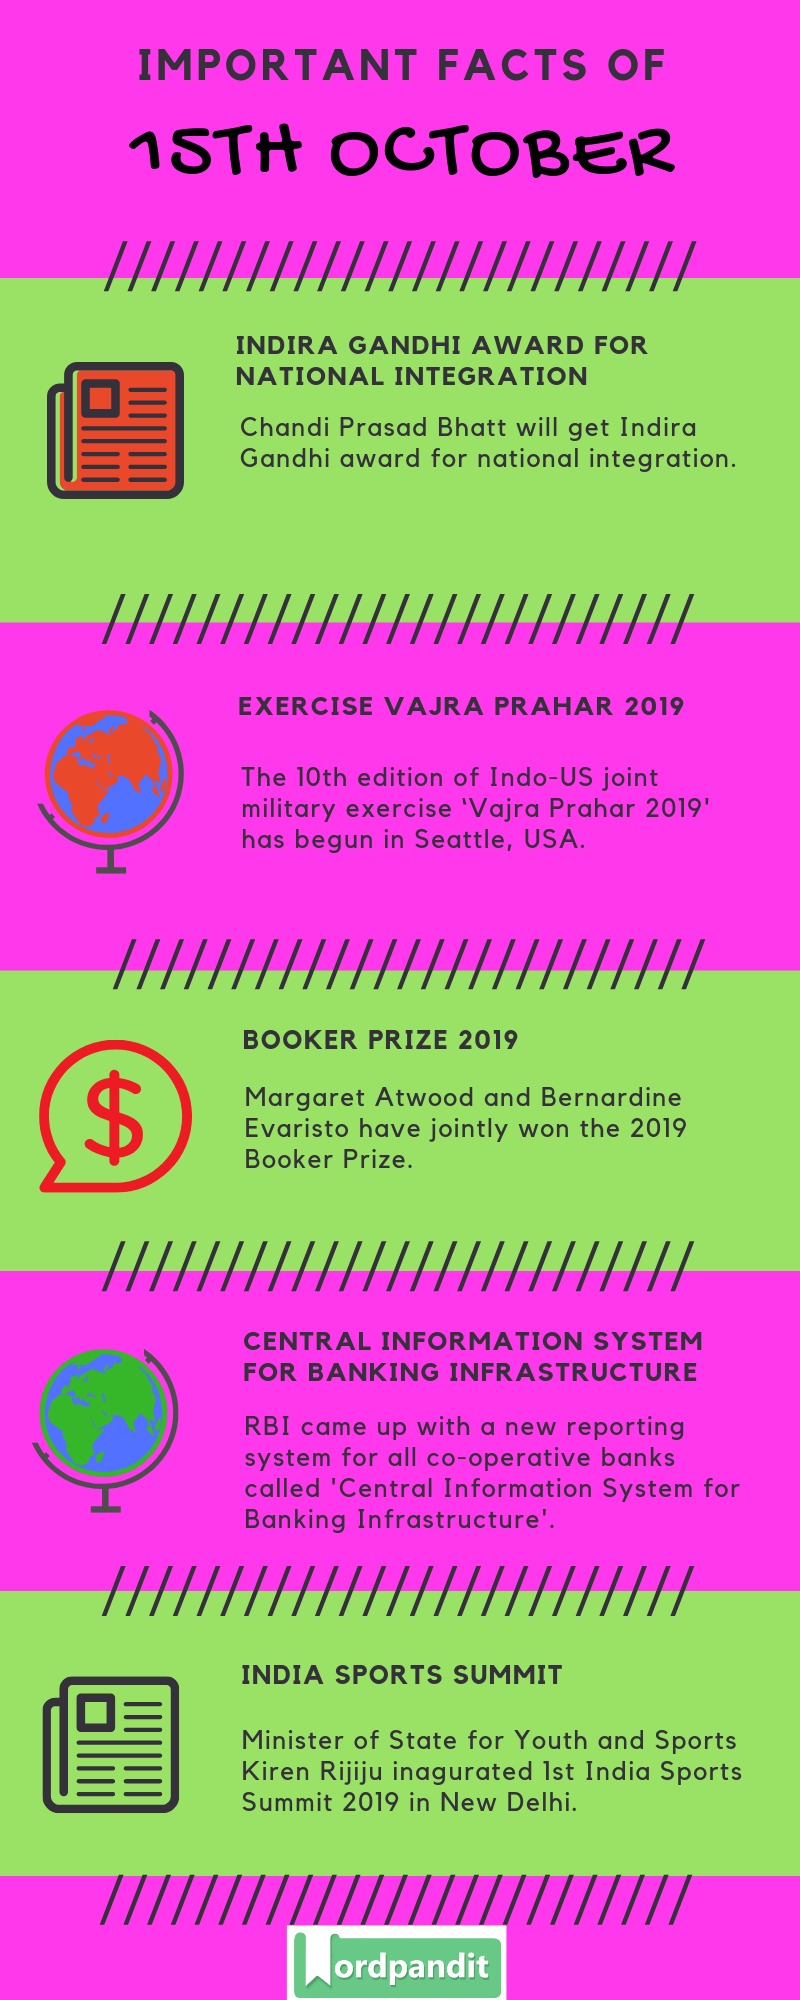 Daily Current Affairs 15 October 2019 Current Affairs Quiz 15 October 2019 Current Affairs Infographic